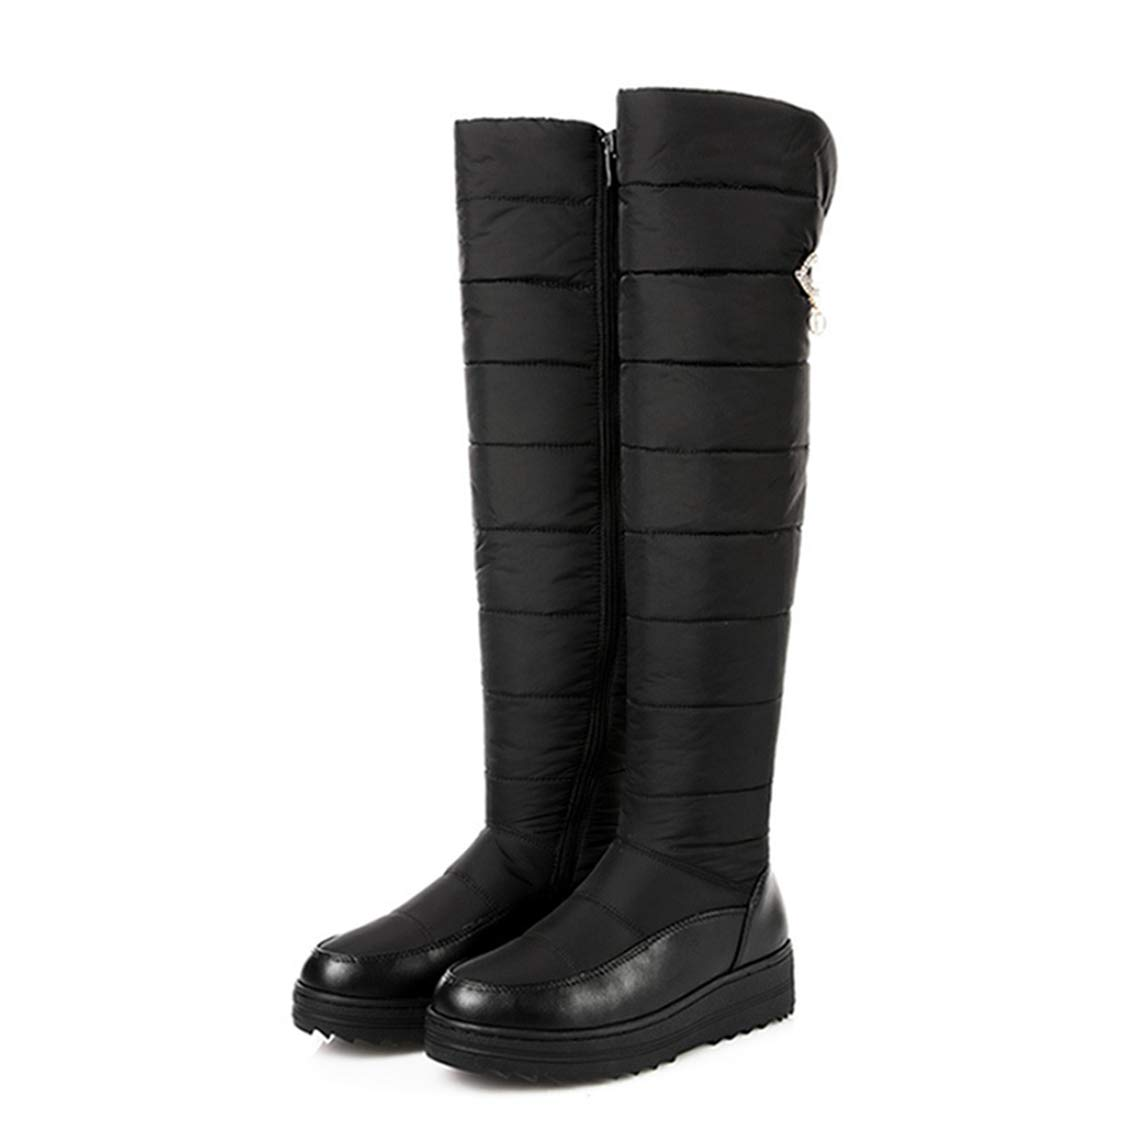 Black DOSOMI Women's Waterproof Winter Fully Down Lined Zipper Closure Middle Heel Sexy Snow Over The Knee High Boots